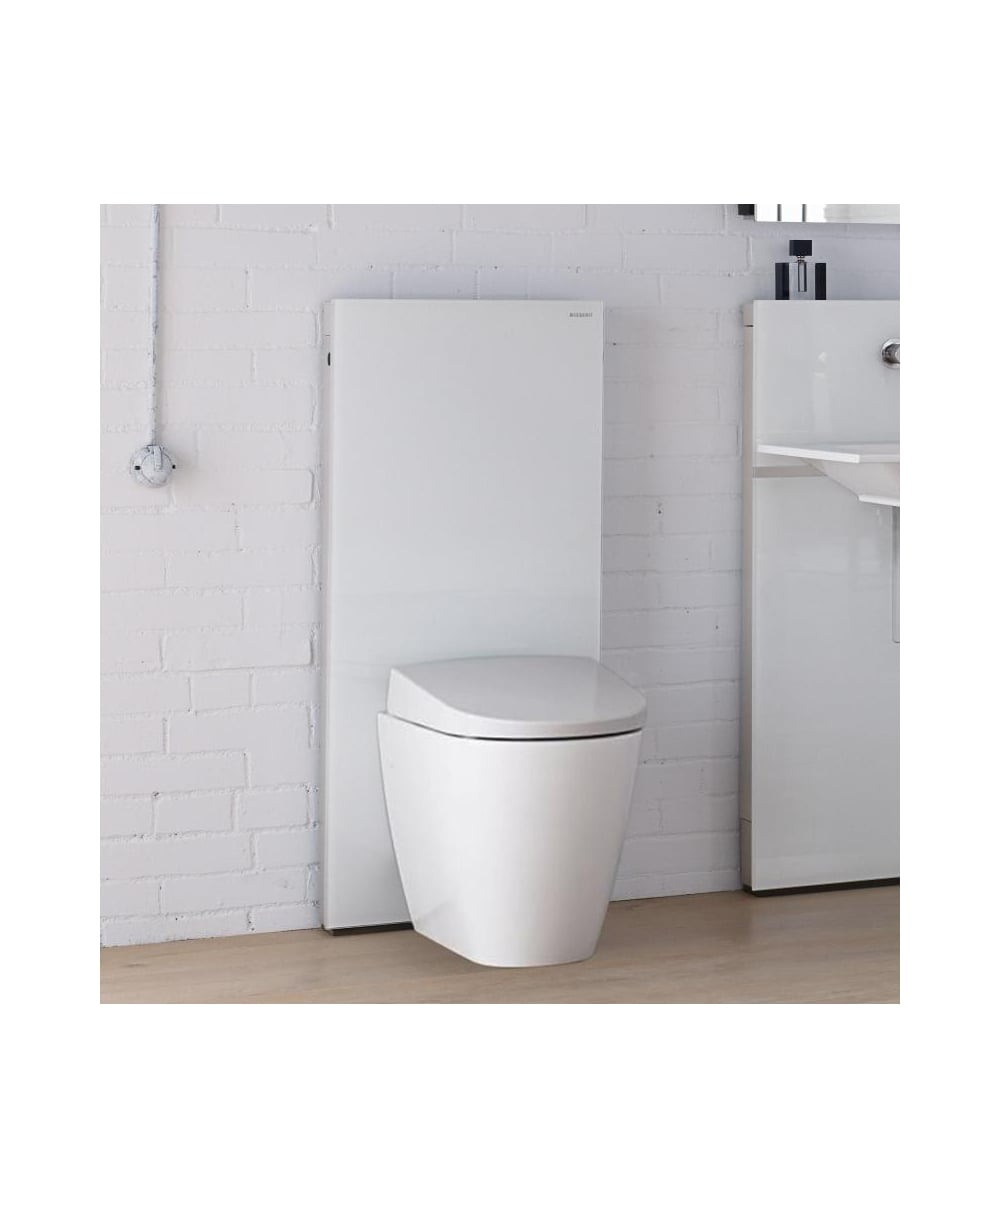 geberit wc excellent china wc washdown onepiece toilet with geberit or rut fittings watermark. Black Bedroom Furniture Sets. Home Design Ideas